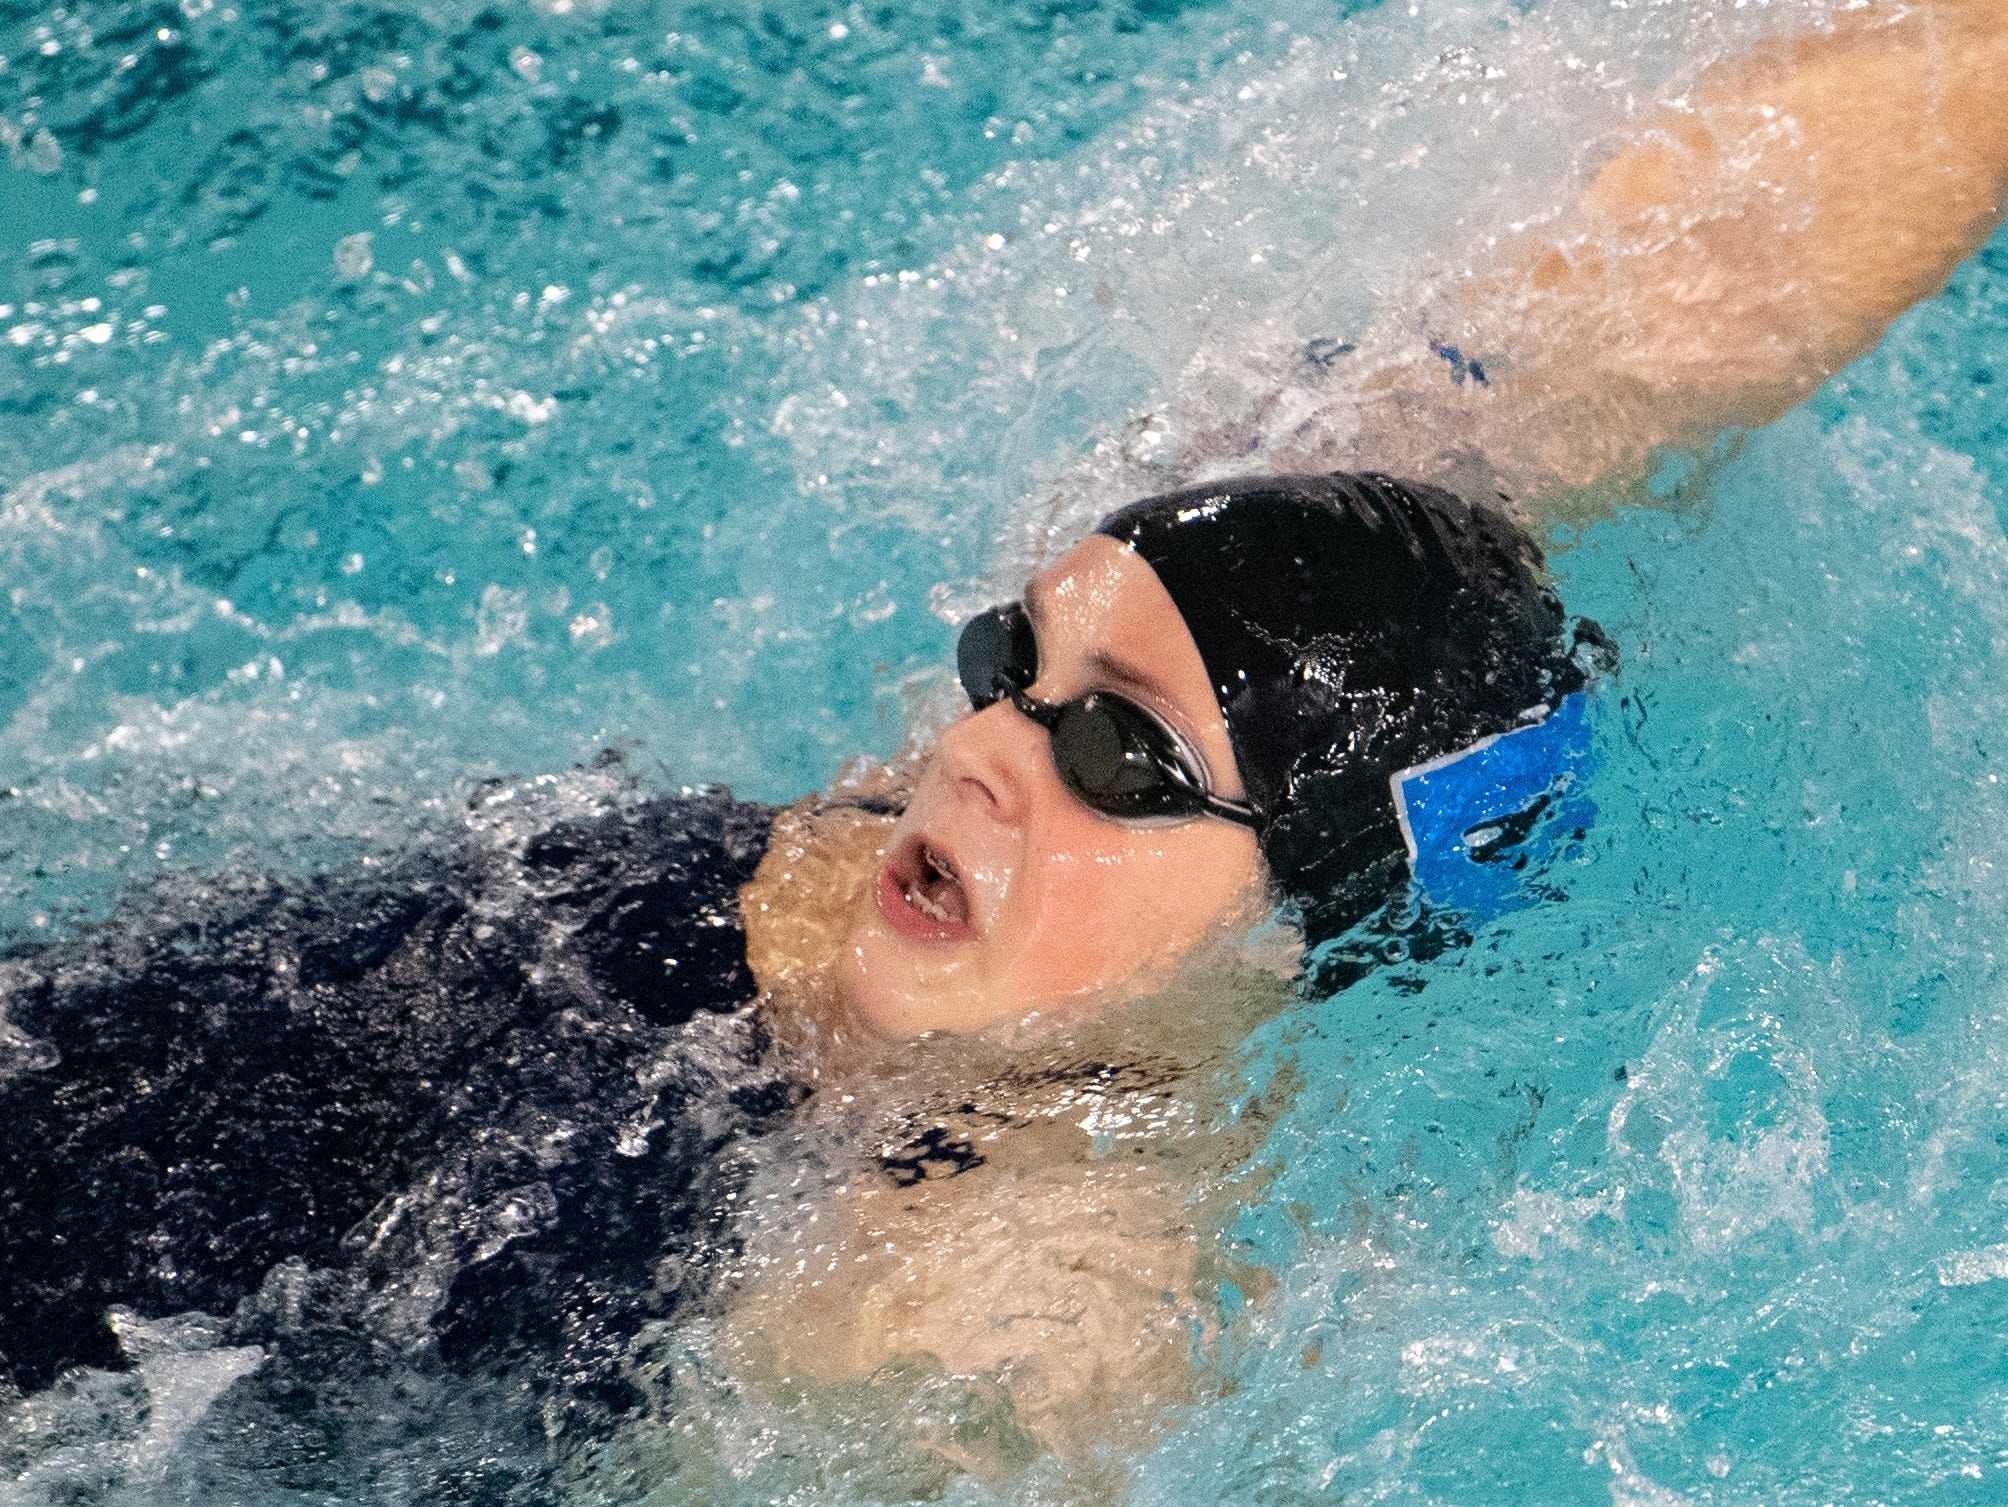 Langley Brockway picks up speed during the boys' and girls' swim meet between Dallastown and Central York, January 10, 2019. The Panthers defeated the Wildcats 93 to 77 and the Lady Panthers defeated the Lady Wildcats 96 to 74.